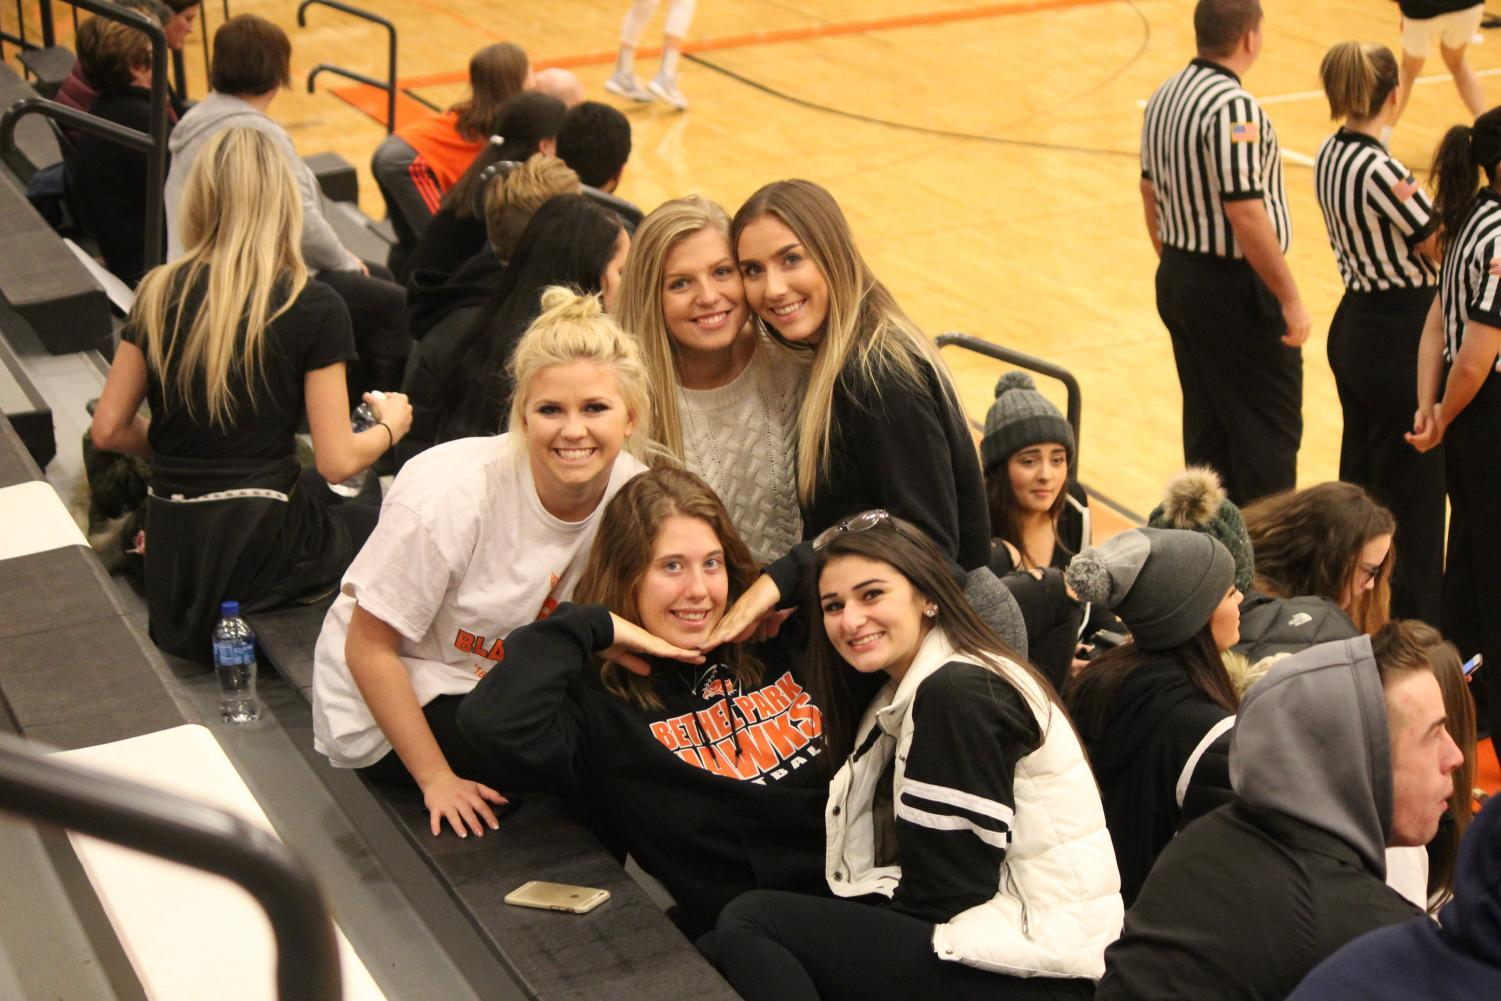 A group of Bethel Park fans pose for a pic during the girls game against Hempfield in round 1 of the Tip-Off Tournament on Friday, Dec. 8.